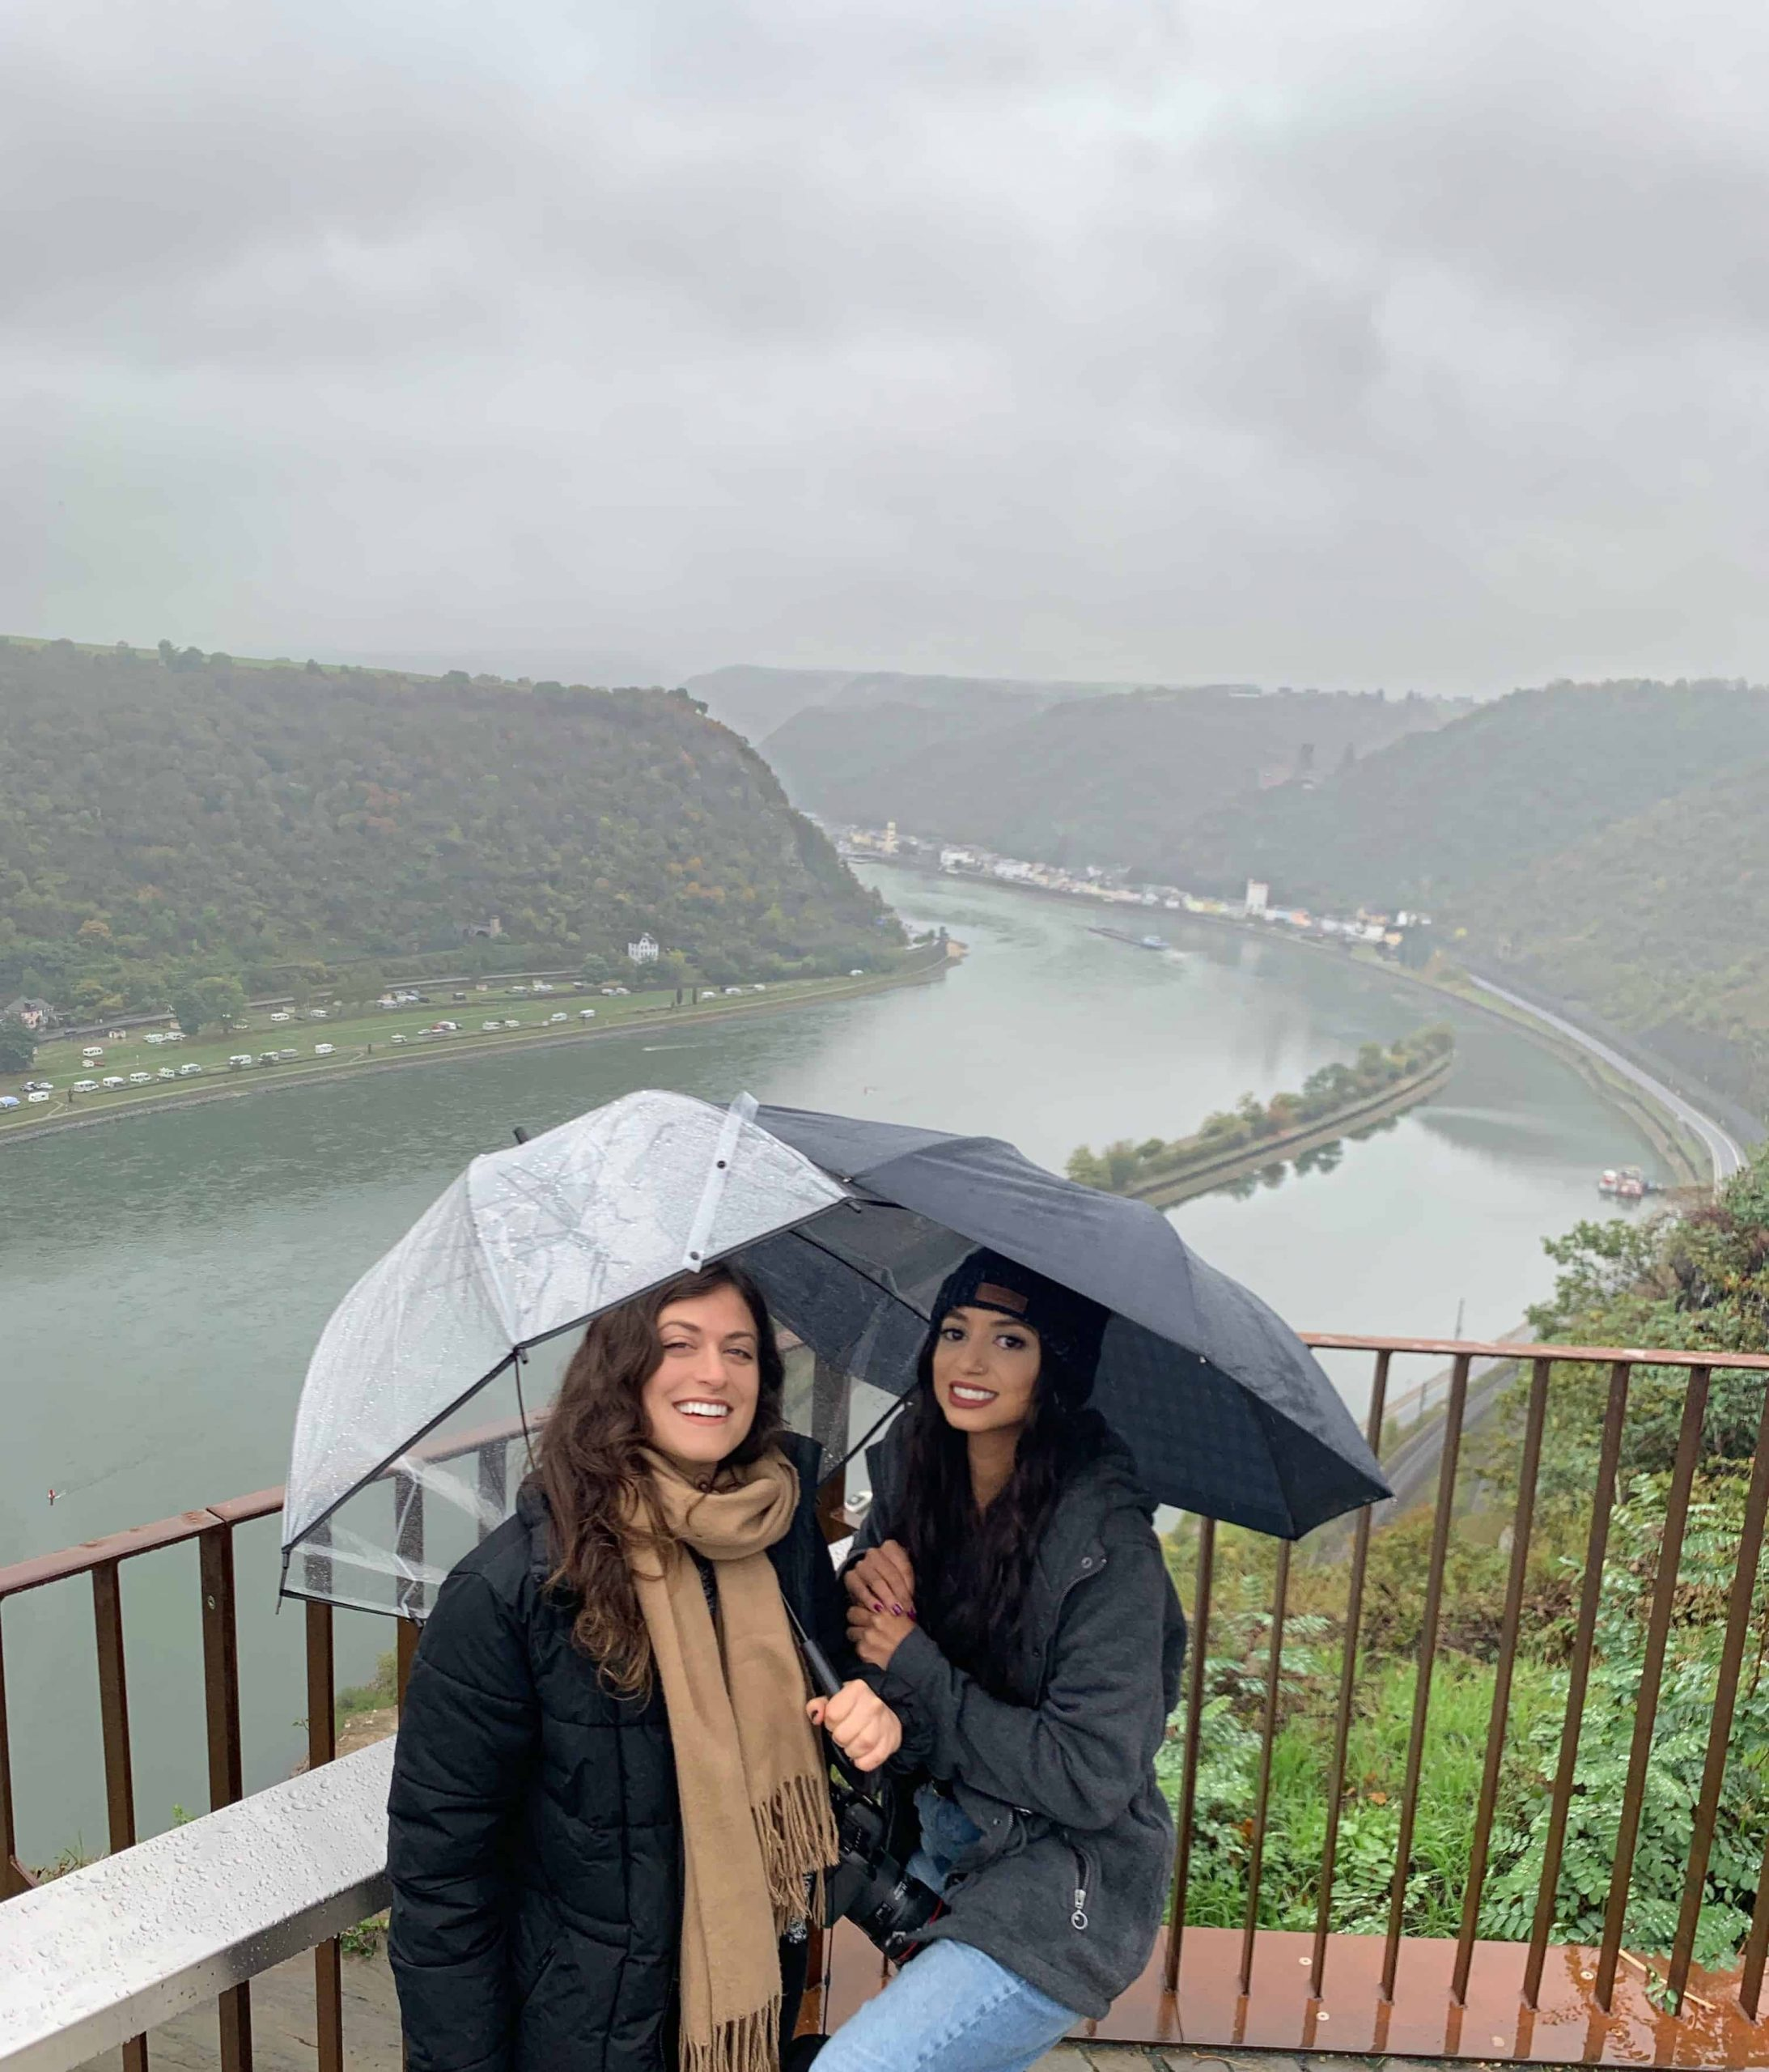 Kelsey and her friend with umbrellas at an overlook over the Mosel River in Germany